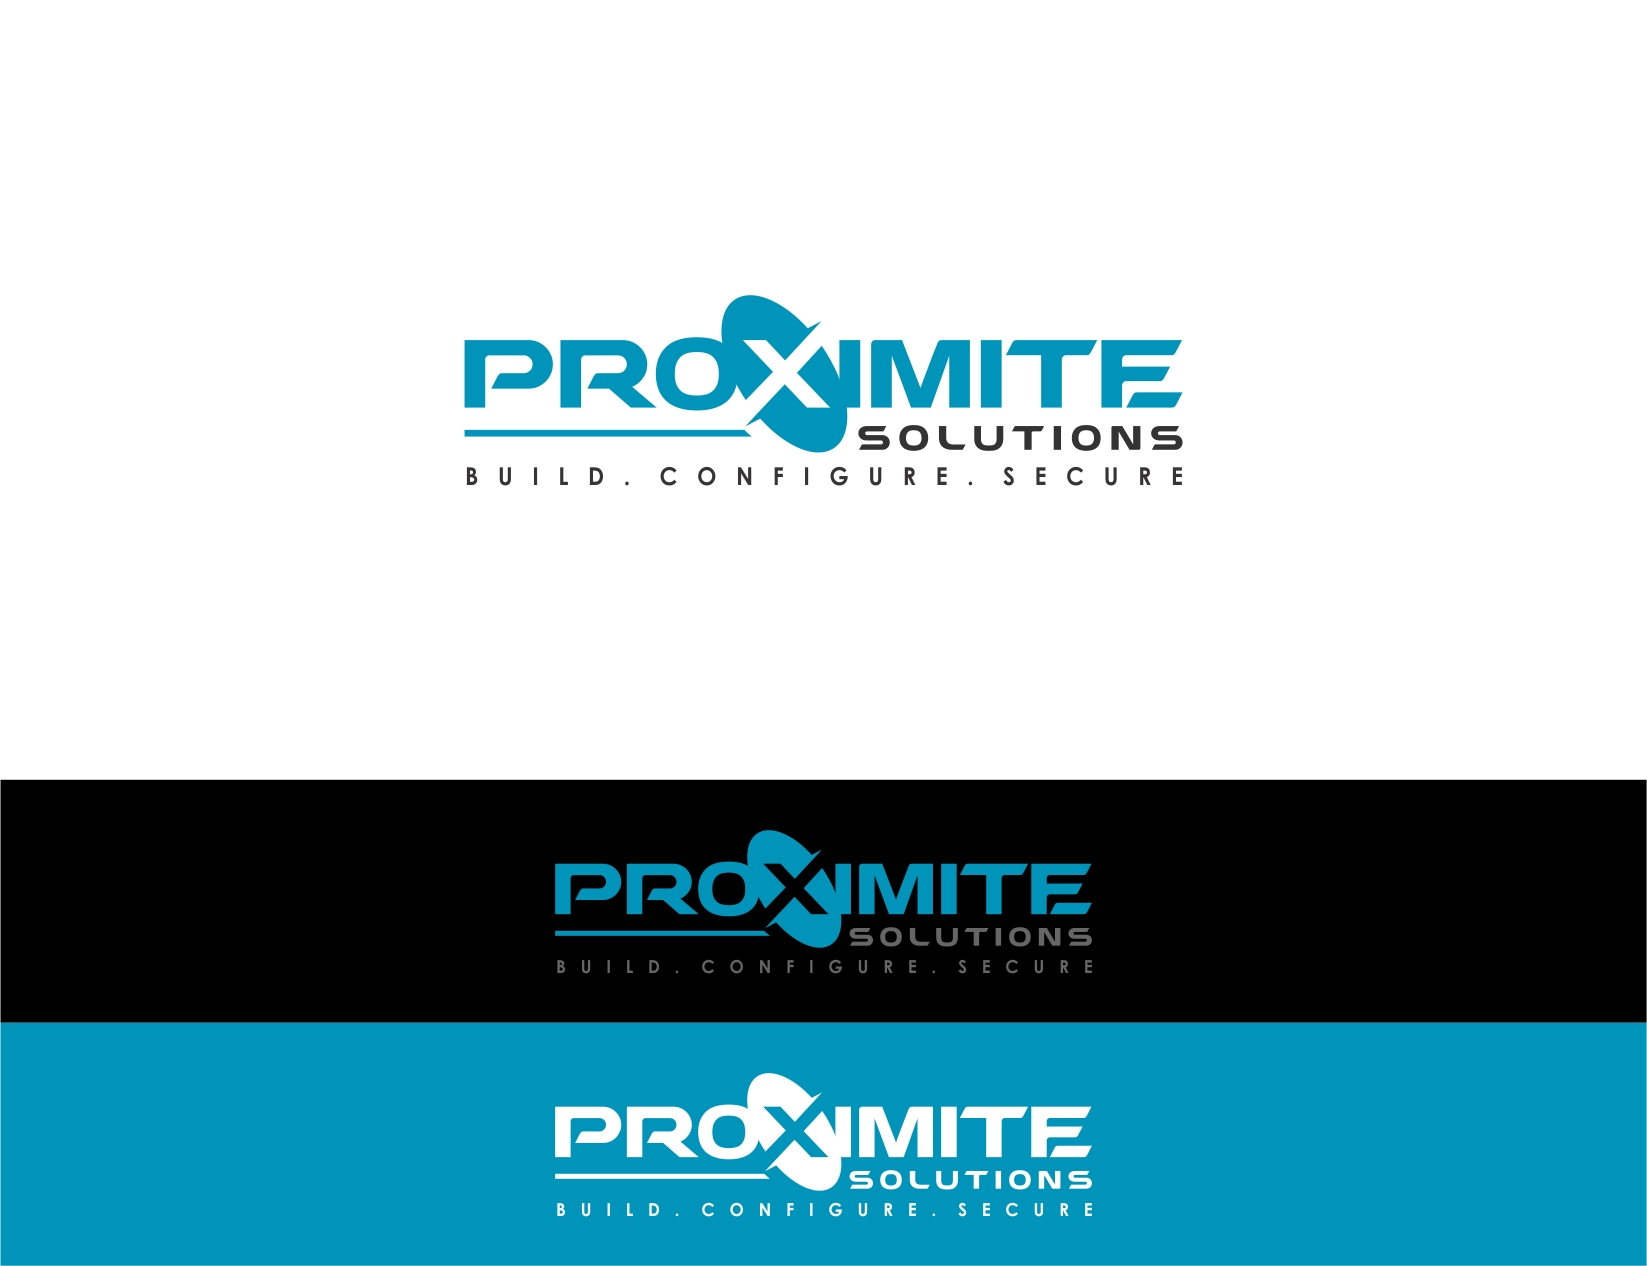 Logo Design by haidu - Entry No. 129 in the Logo Design Contest New Logo Design for Proximity Solutions.